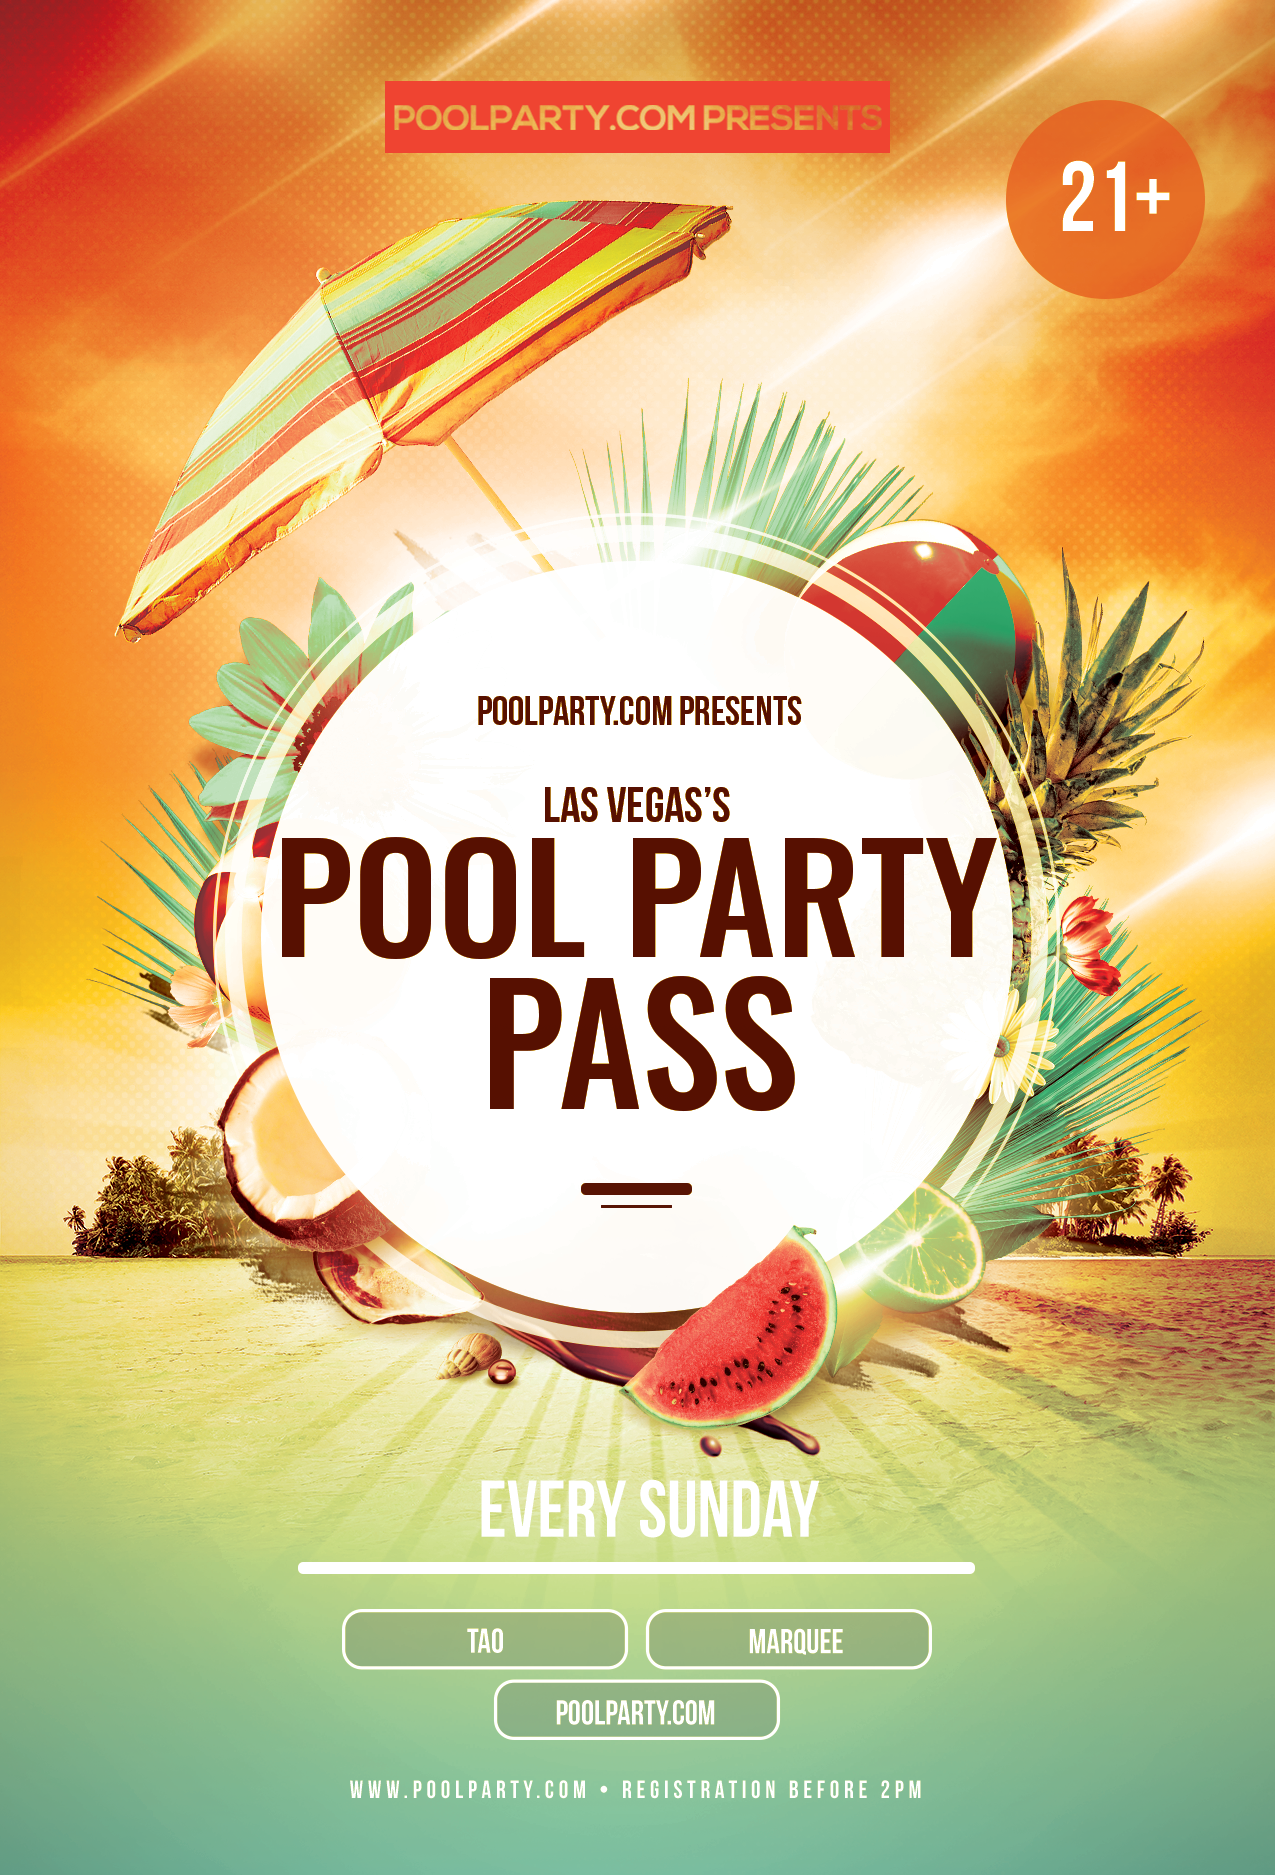 Sunday's Pool Party Pass (September 22nd)*NOW INCLUDING FREE ADMISSION TO TAO NIGHTCLUB*